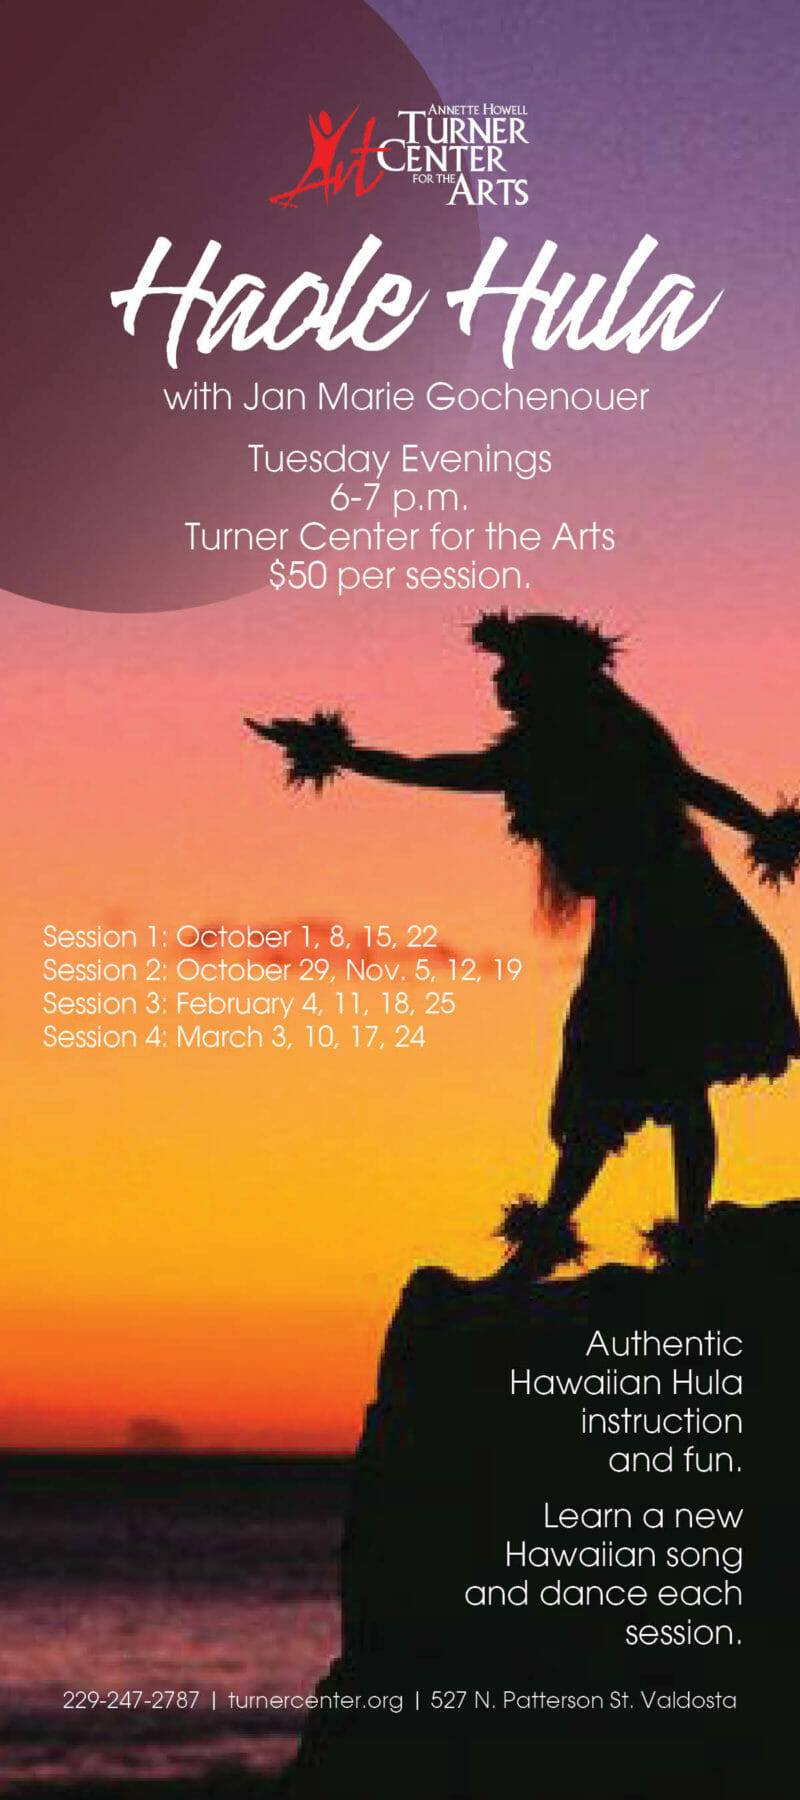 Turner Center Offers Cultural Hula Dance